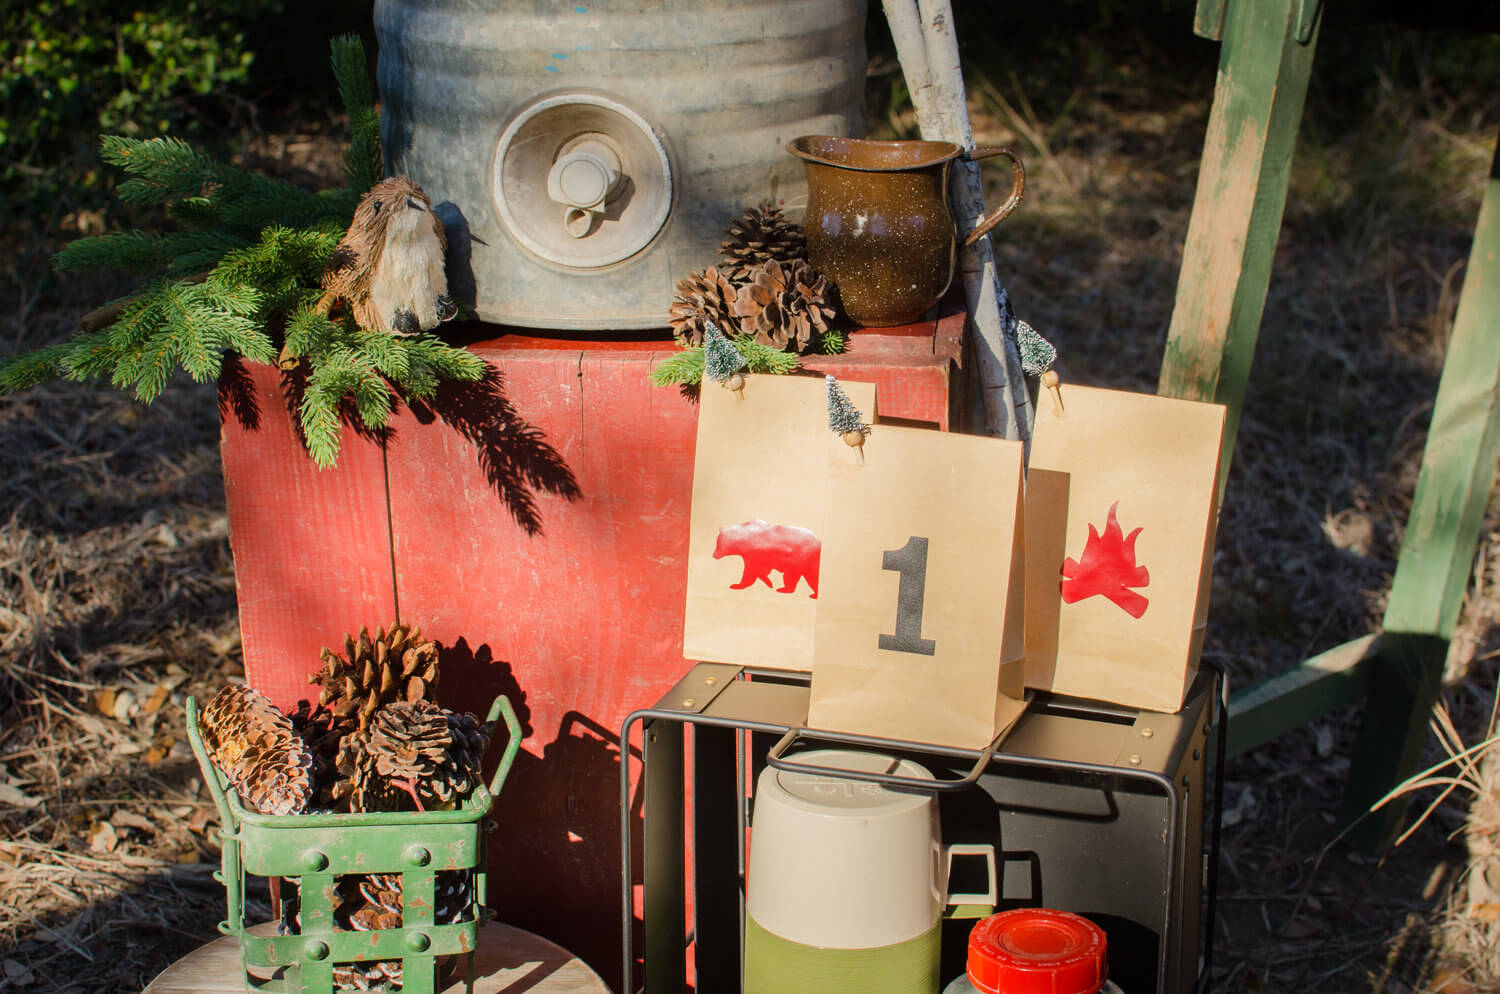 Lumberjack party decor / lumberjack party ideas / goodie bags for a lumberjack party / winter party ideas for boys / styled by Carolina from MINT Event Design / www.minteventdesign.com